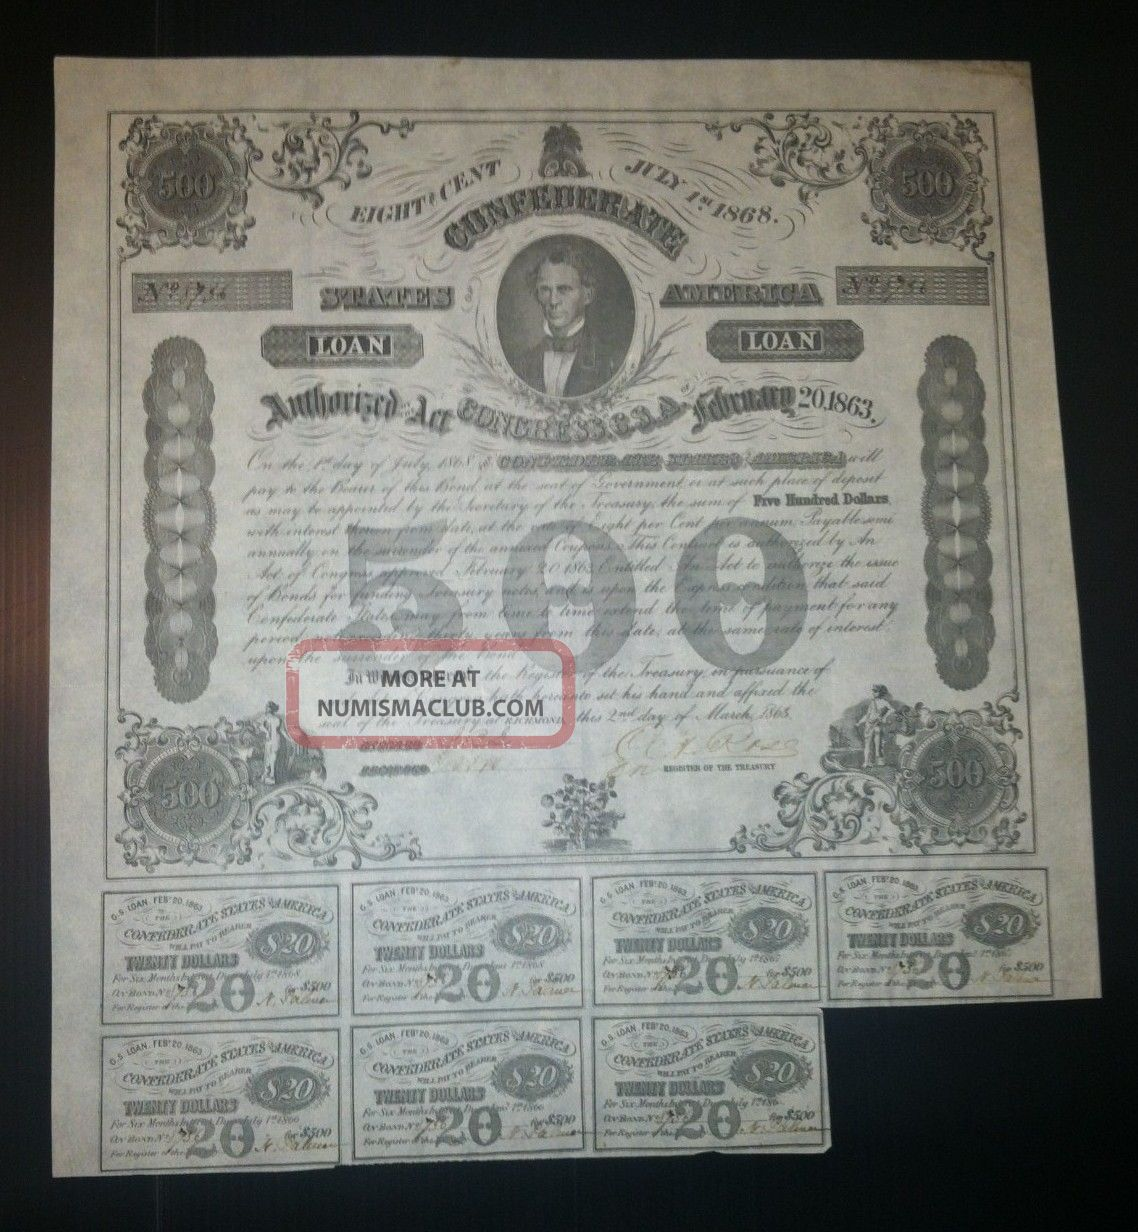 Confederate War Bond - 500 8% With Coupons Attached Stocks & Bonds, Scripophily photo